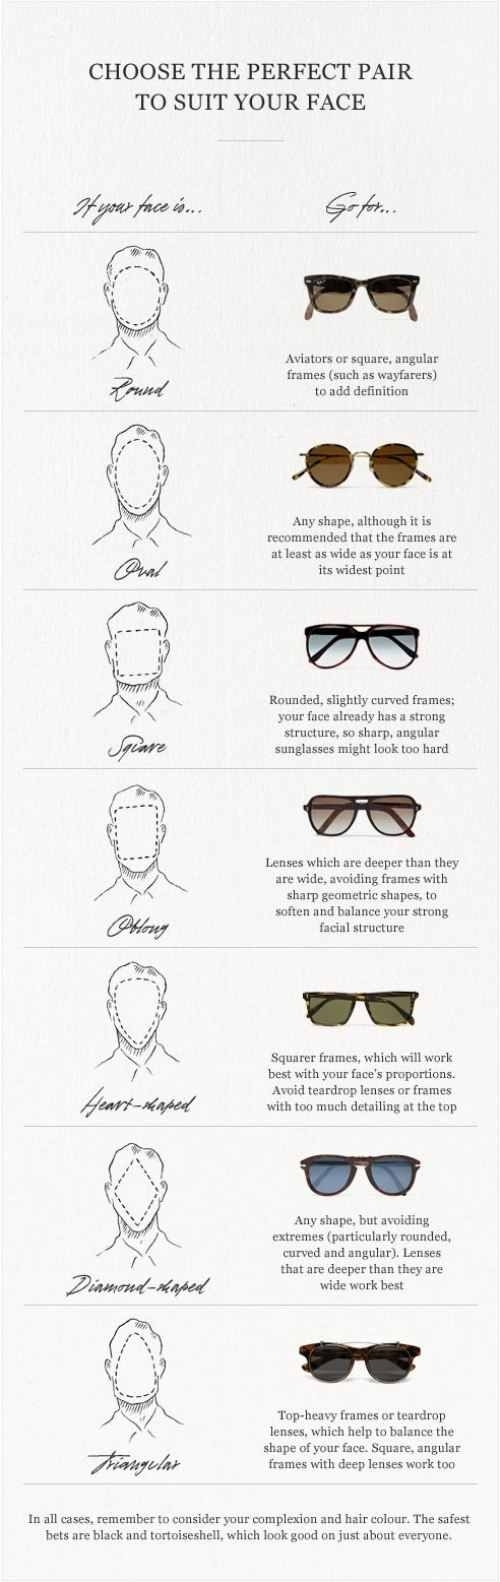 Perfect Pair of Sunglasses for Your Face